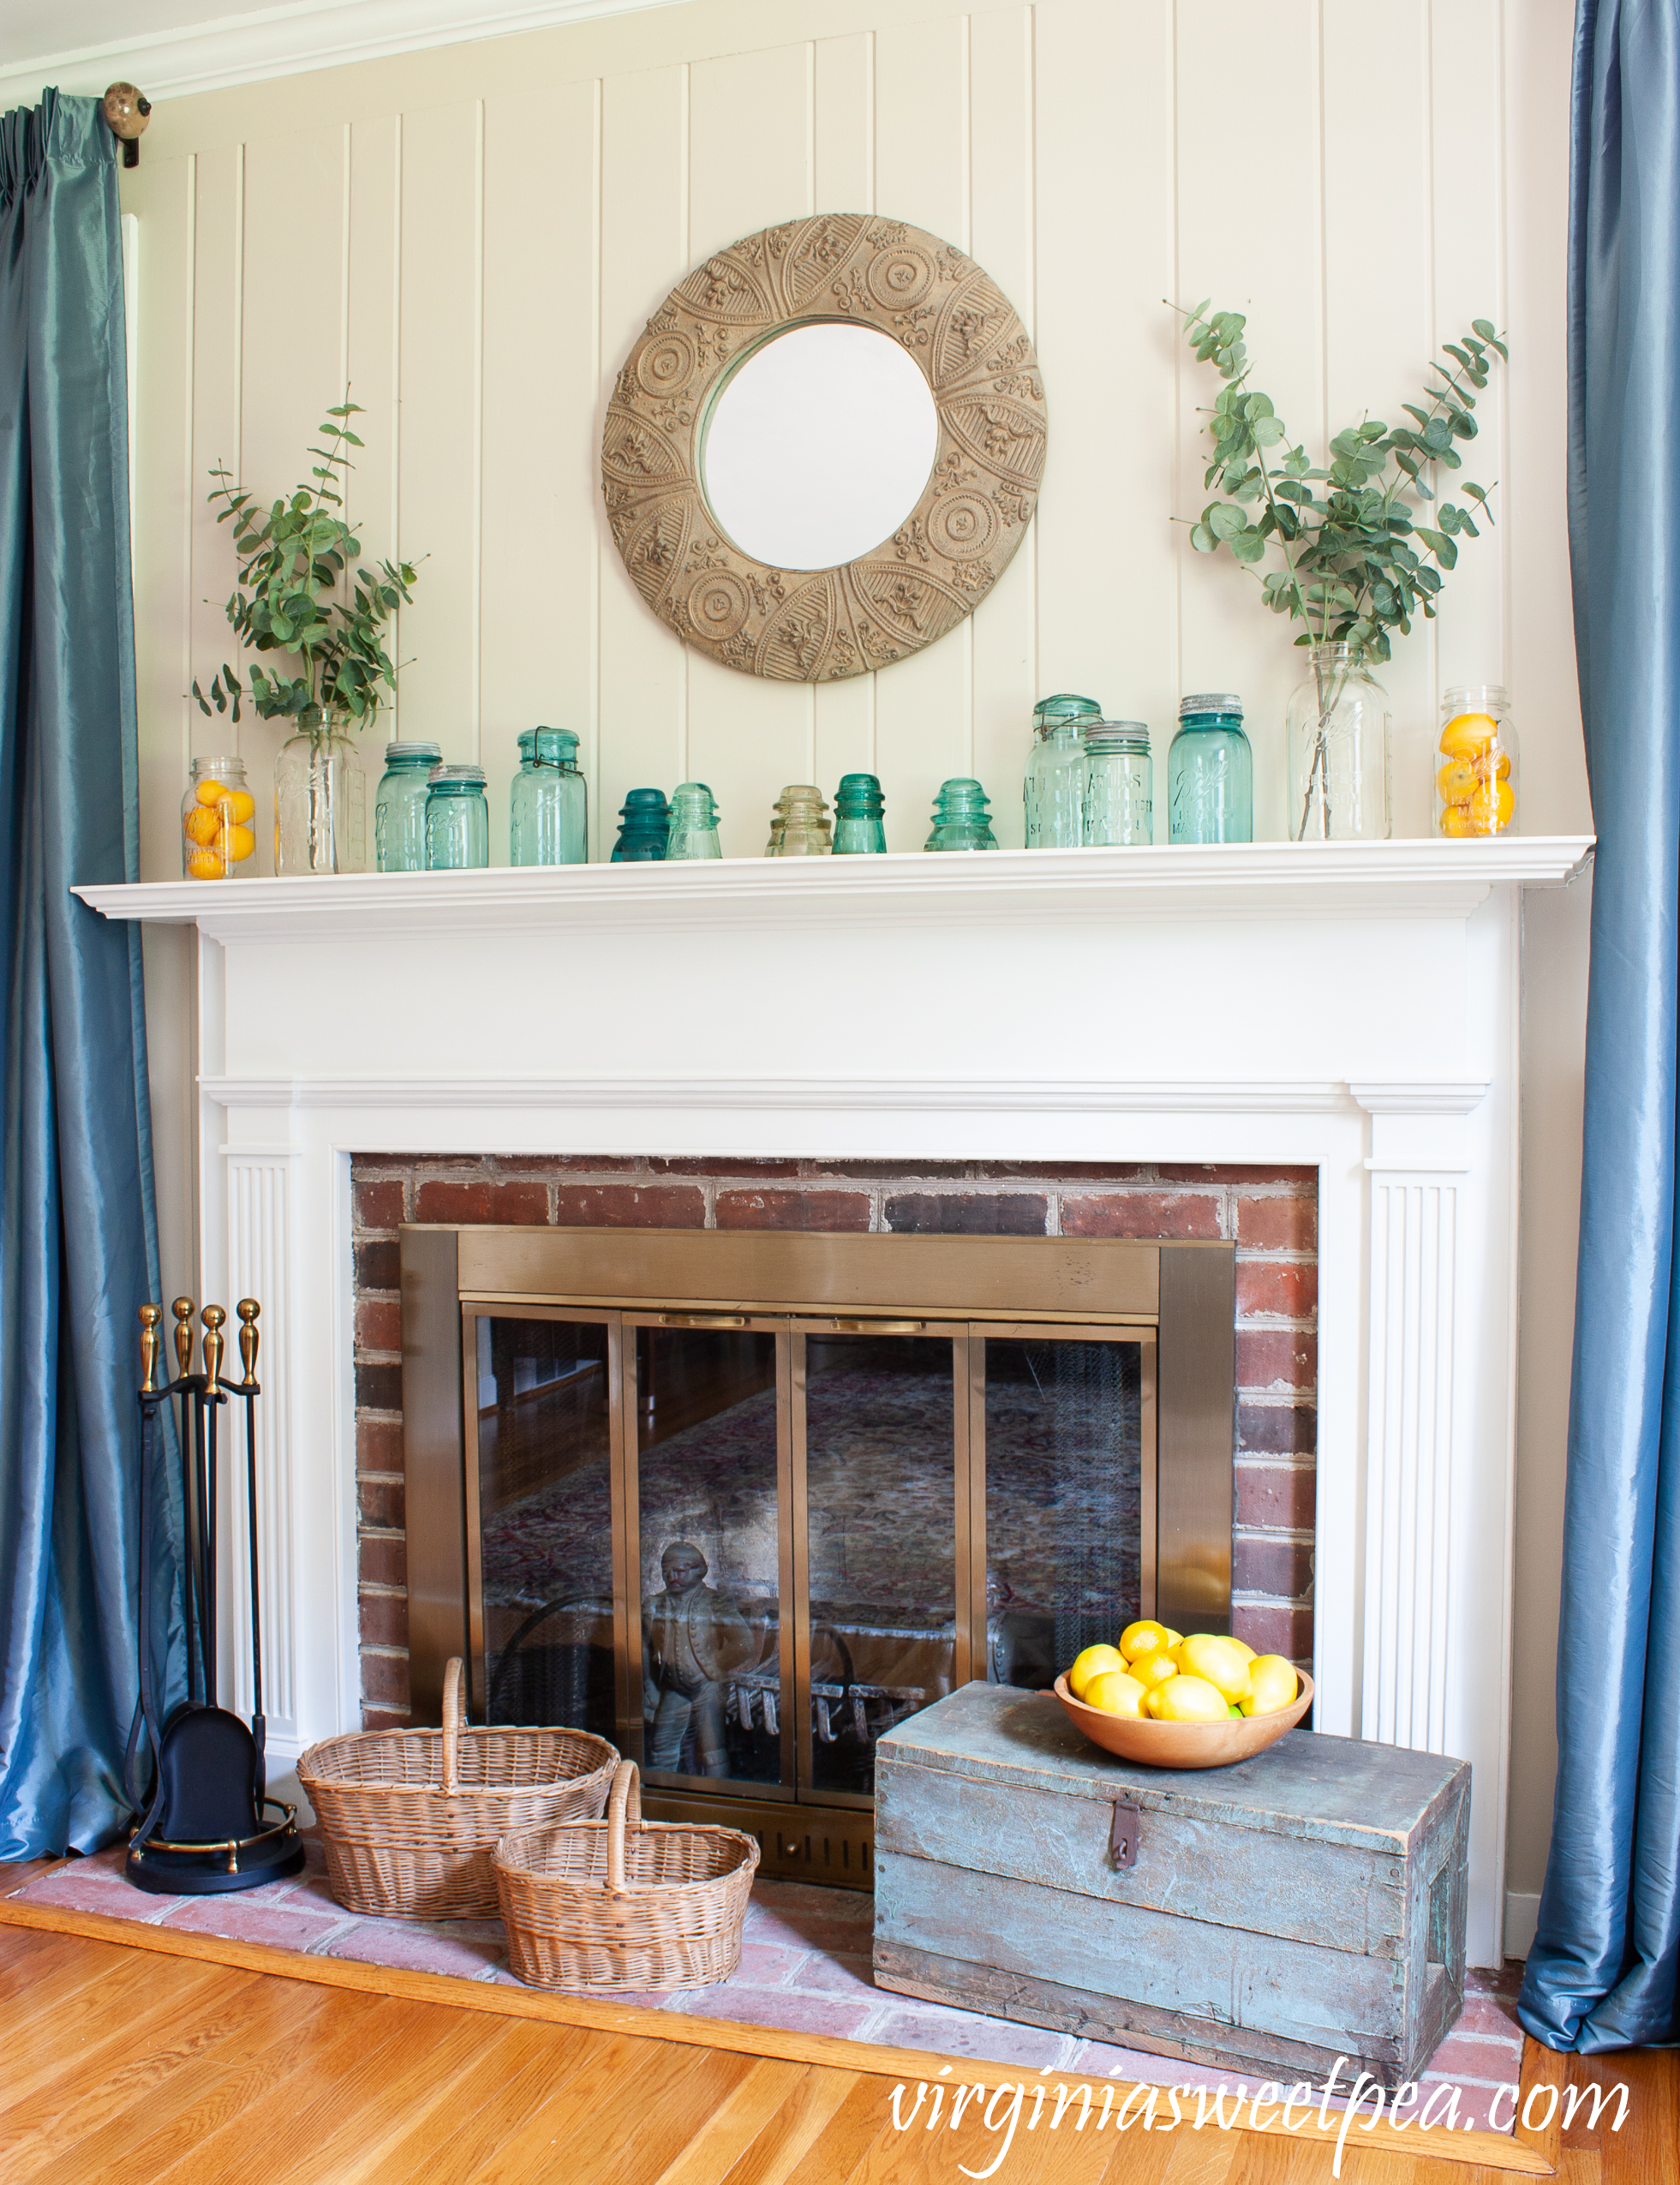 Summer mantel with vintage mason jars, lemons, and eucalyptus.